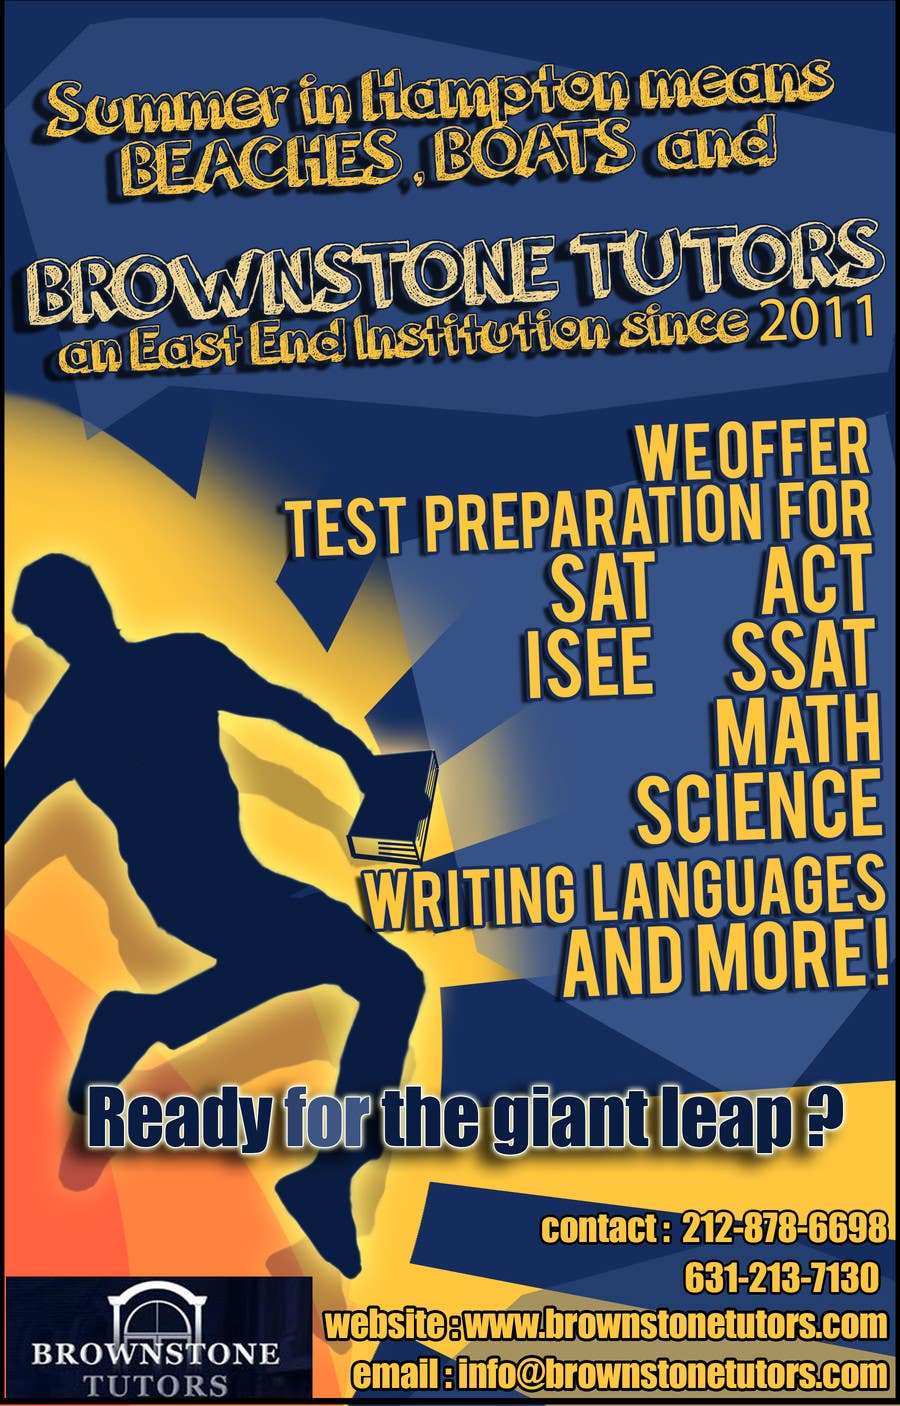 #18 for Advertisement Design for Brownstone Tutors by dewanshparashar